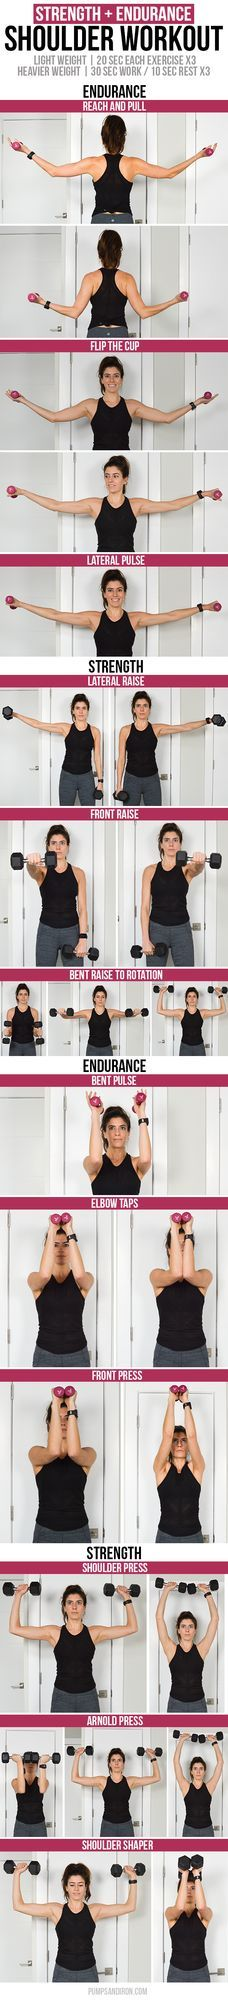 Shoulder Workout: Endurance Burnout + Strength Exercises | Pumps & Iron | Bloglovin'